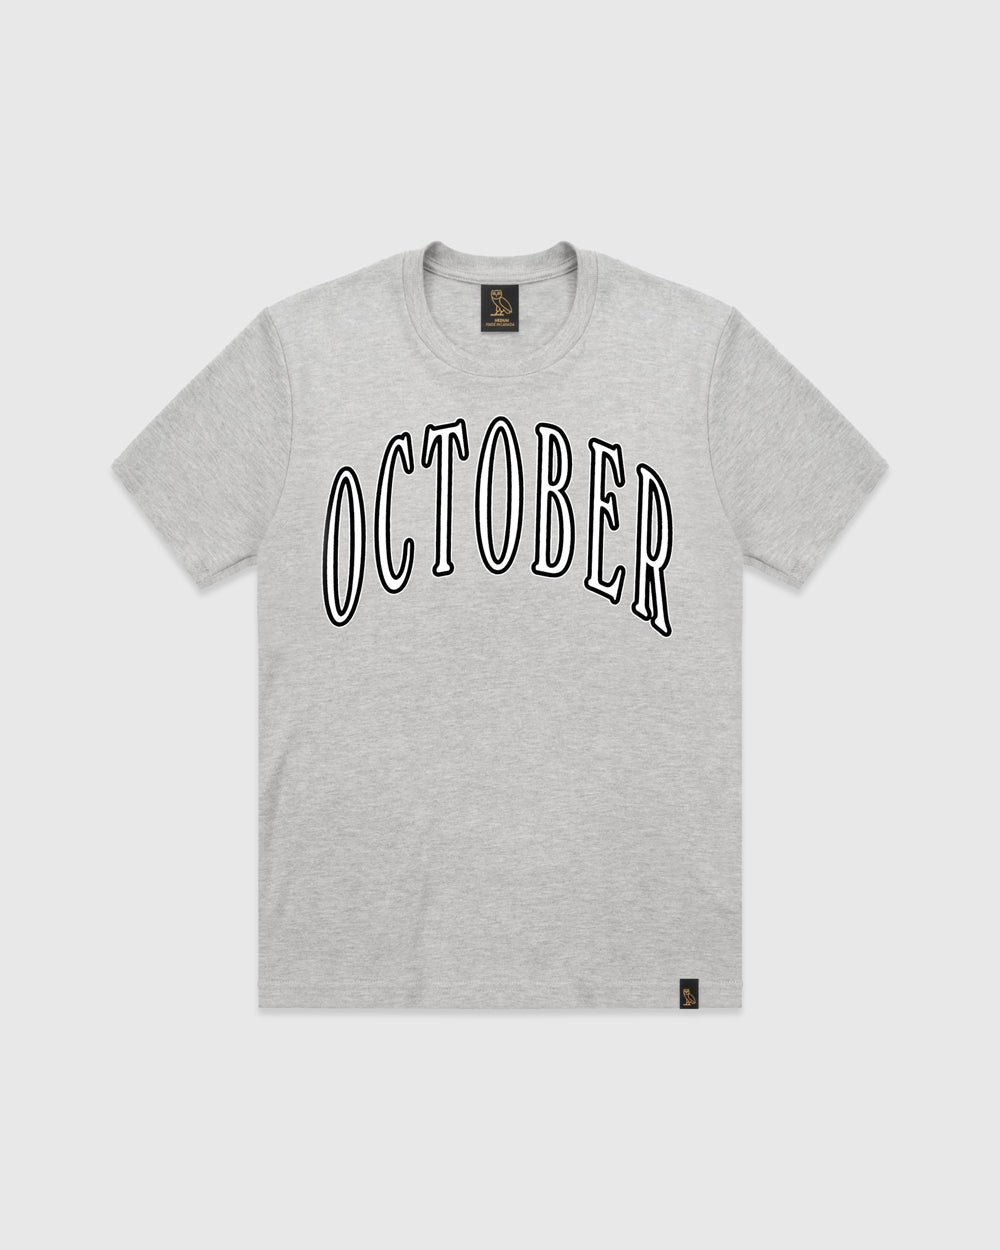 OCTOBER ARCHED T-SHIRT - HEATHER GREY